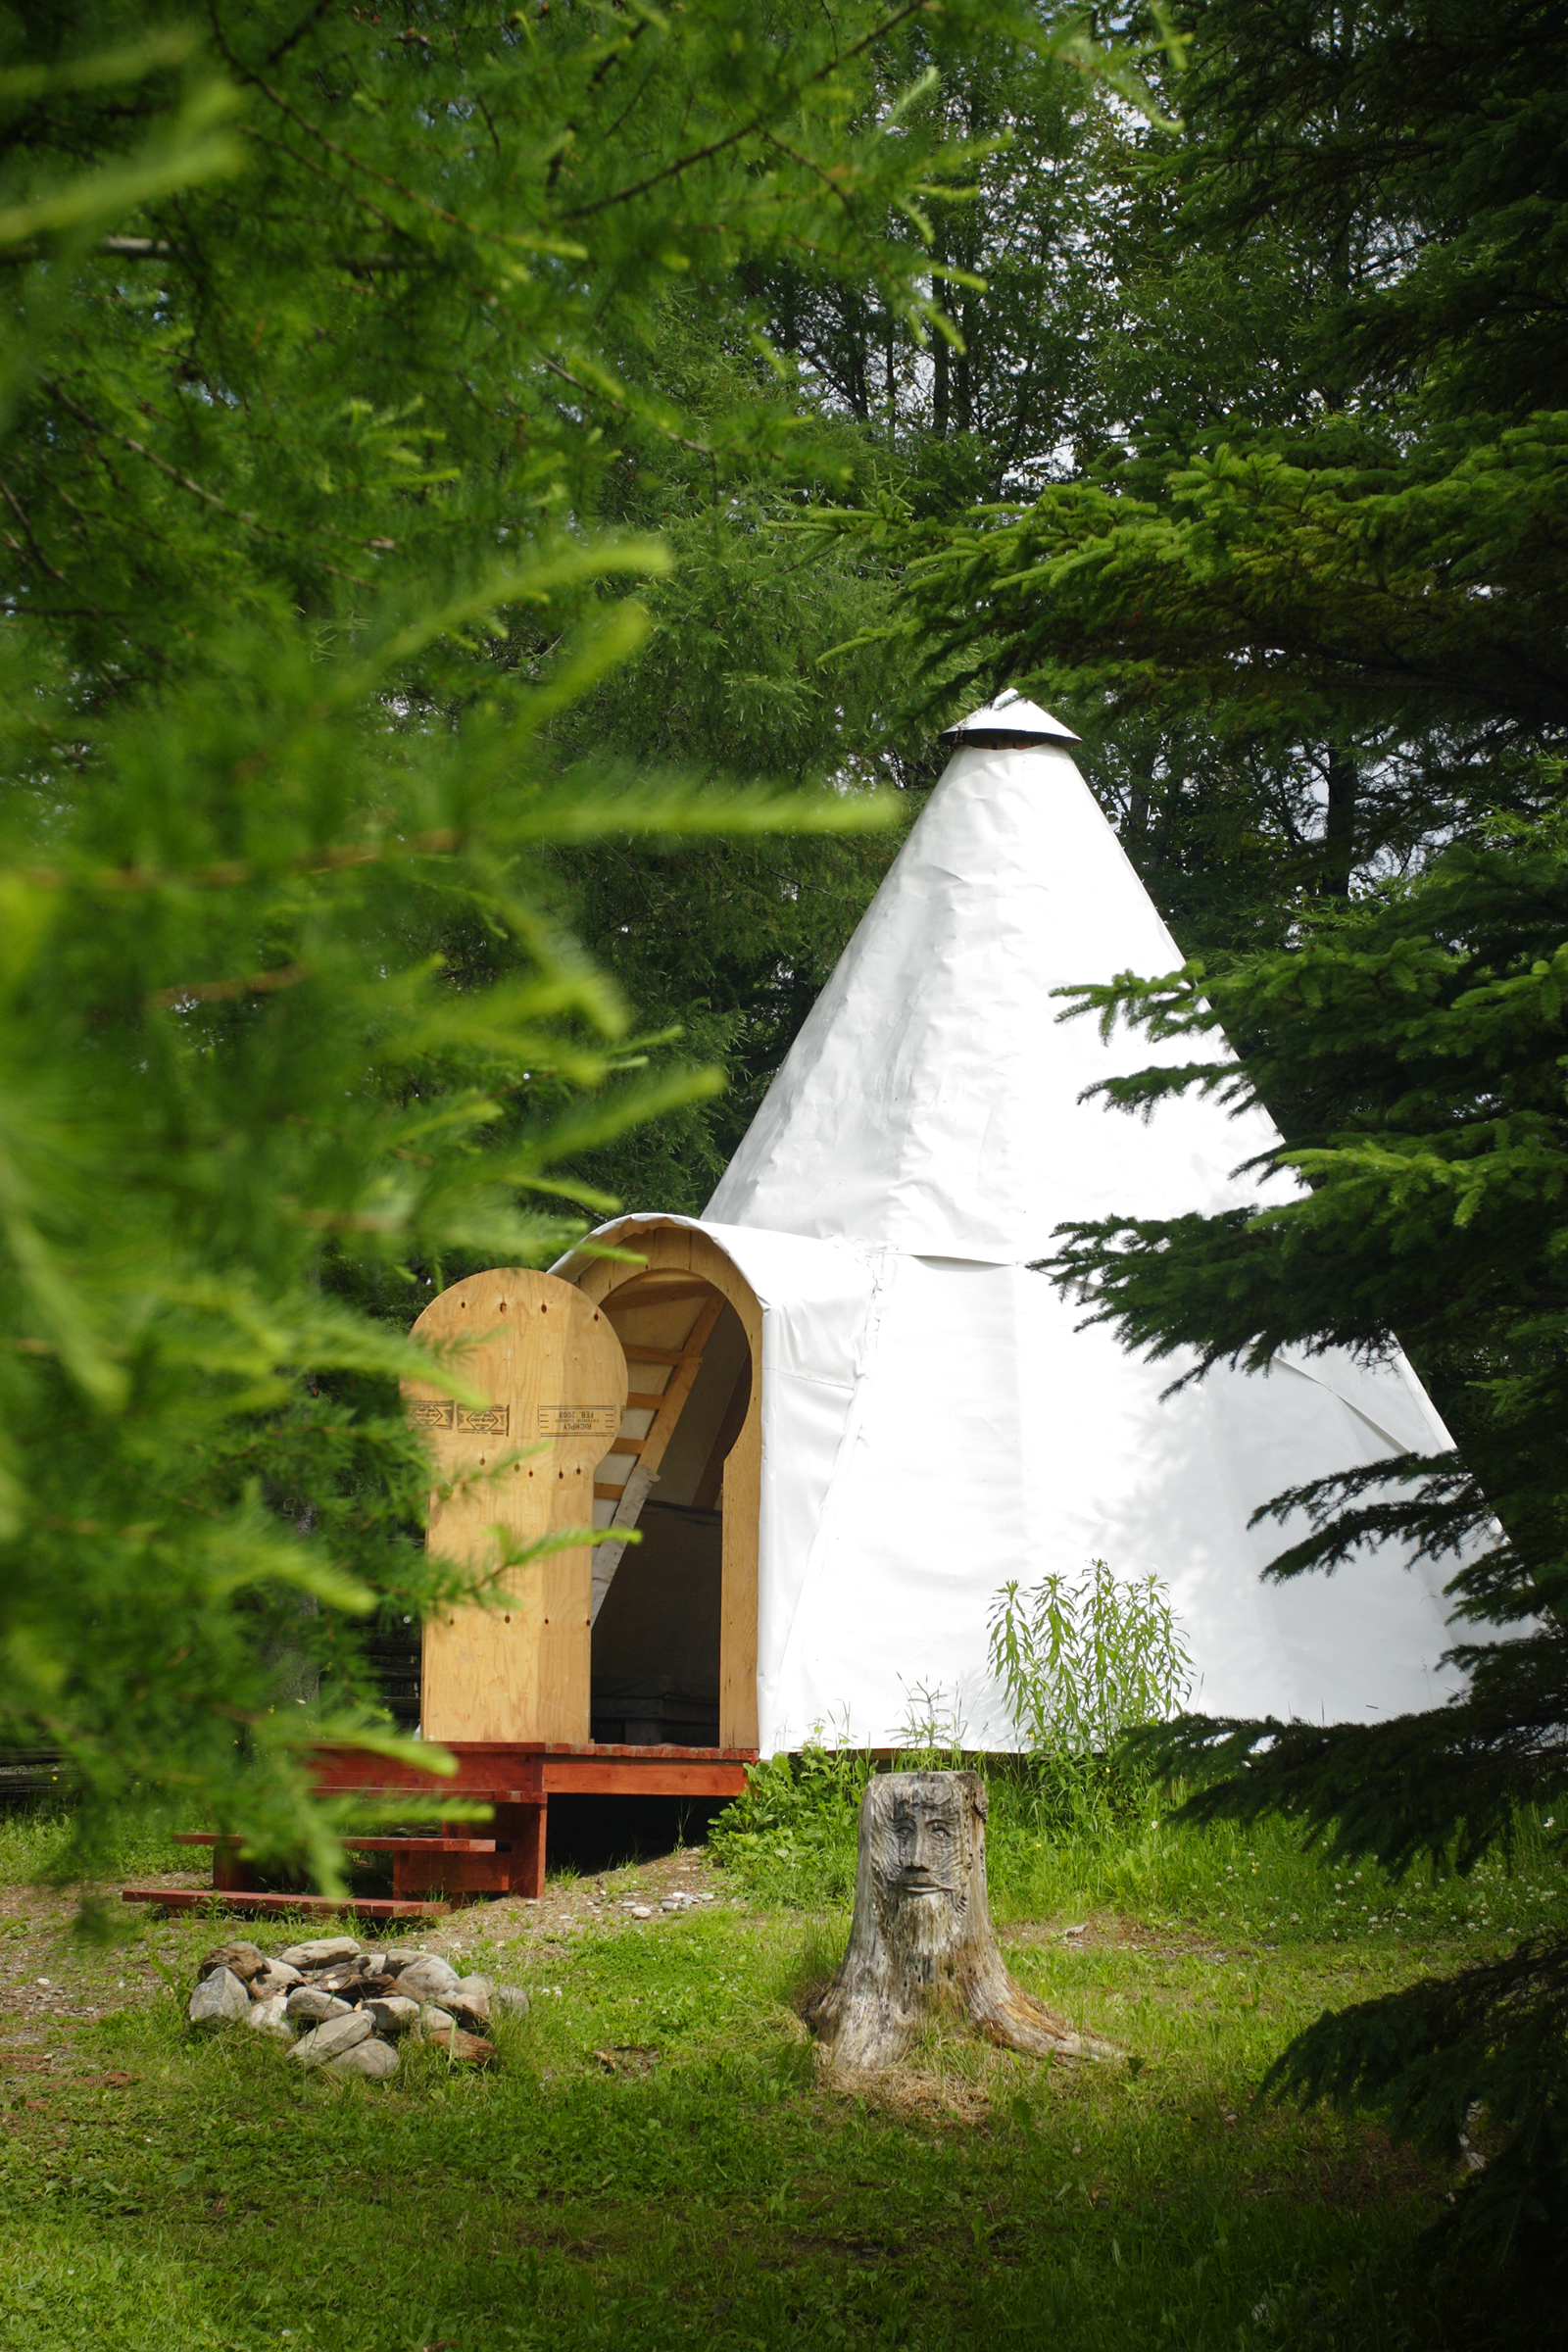 Turnkey camping tipis by the Bonaventure RIver